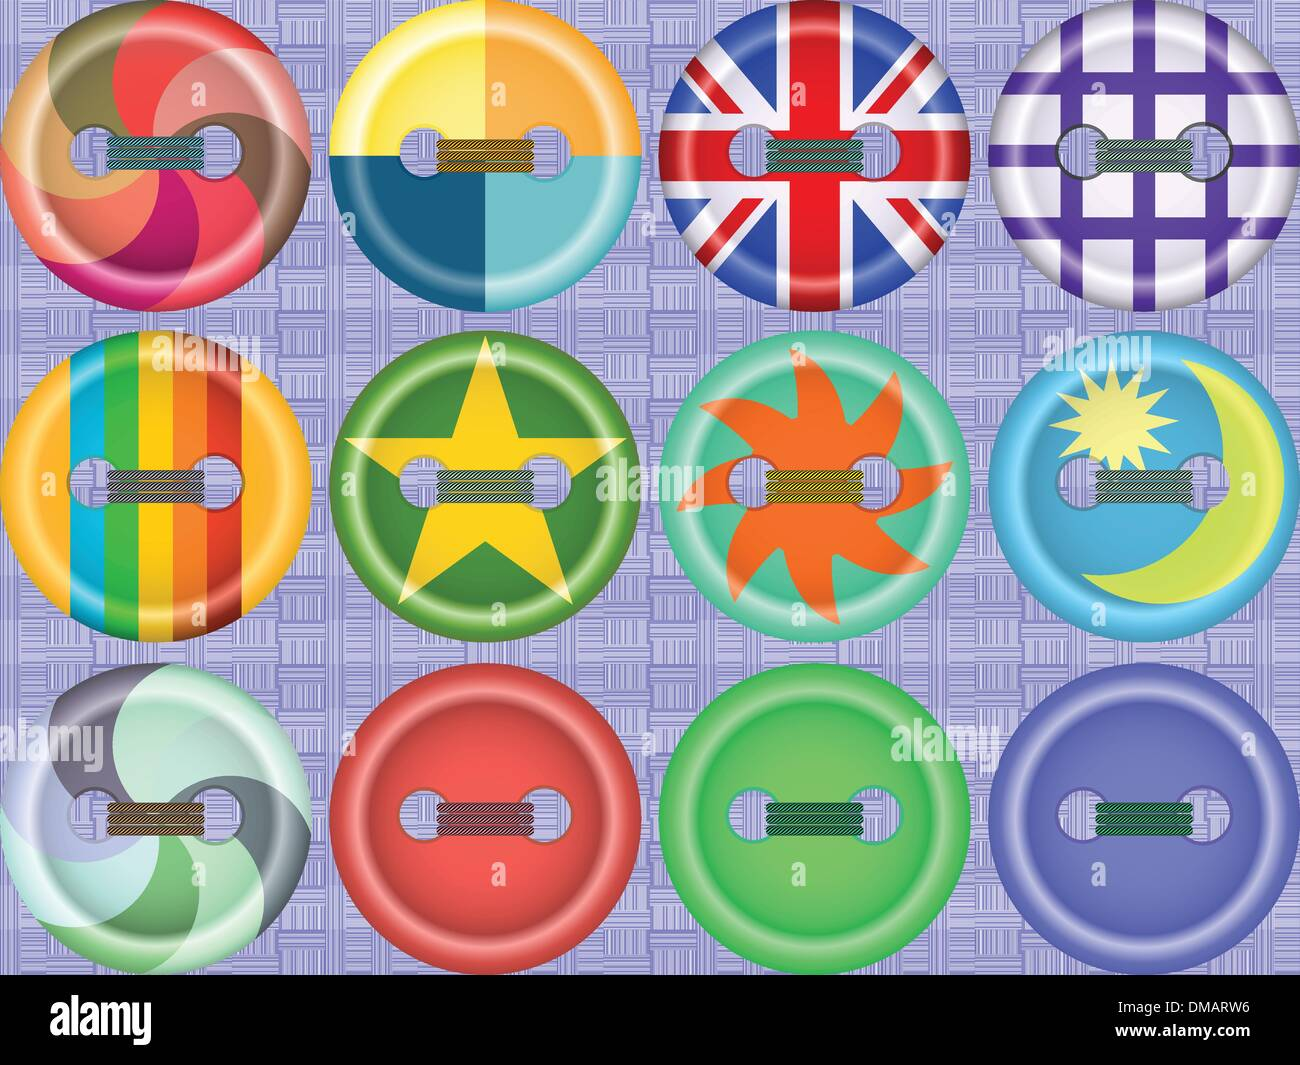 Collection of buttons of fasteners - Stock Image